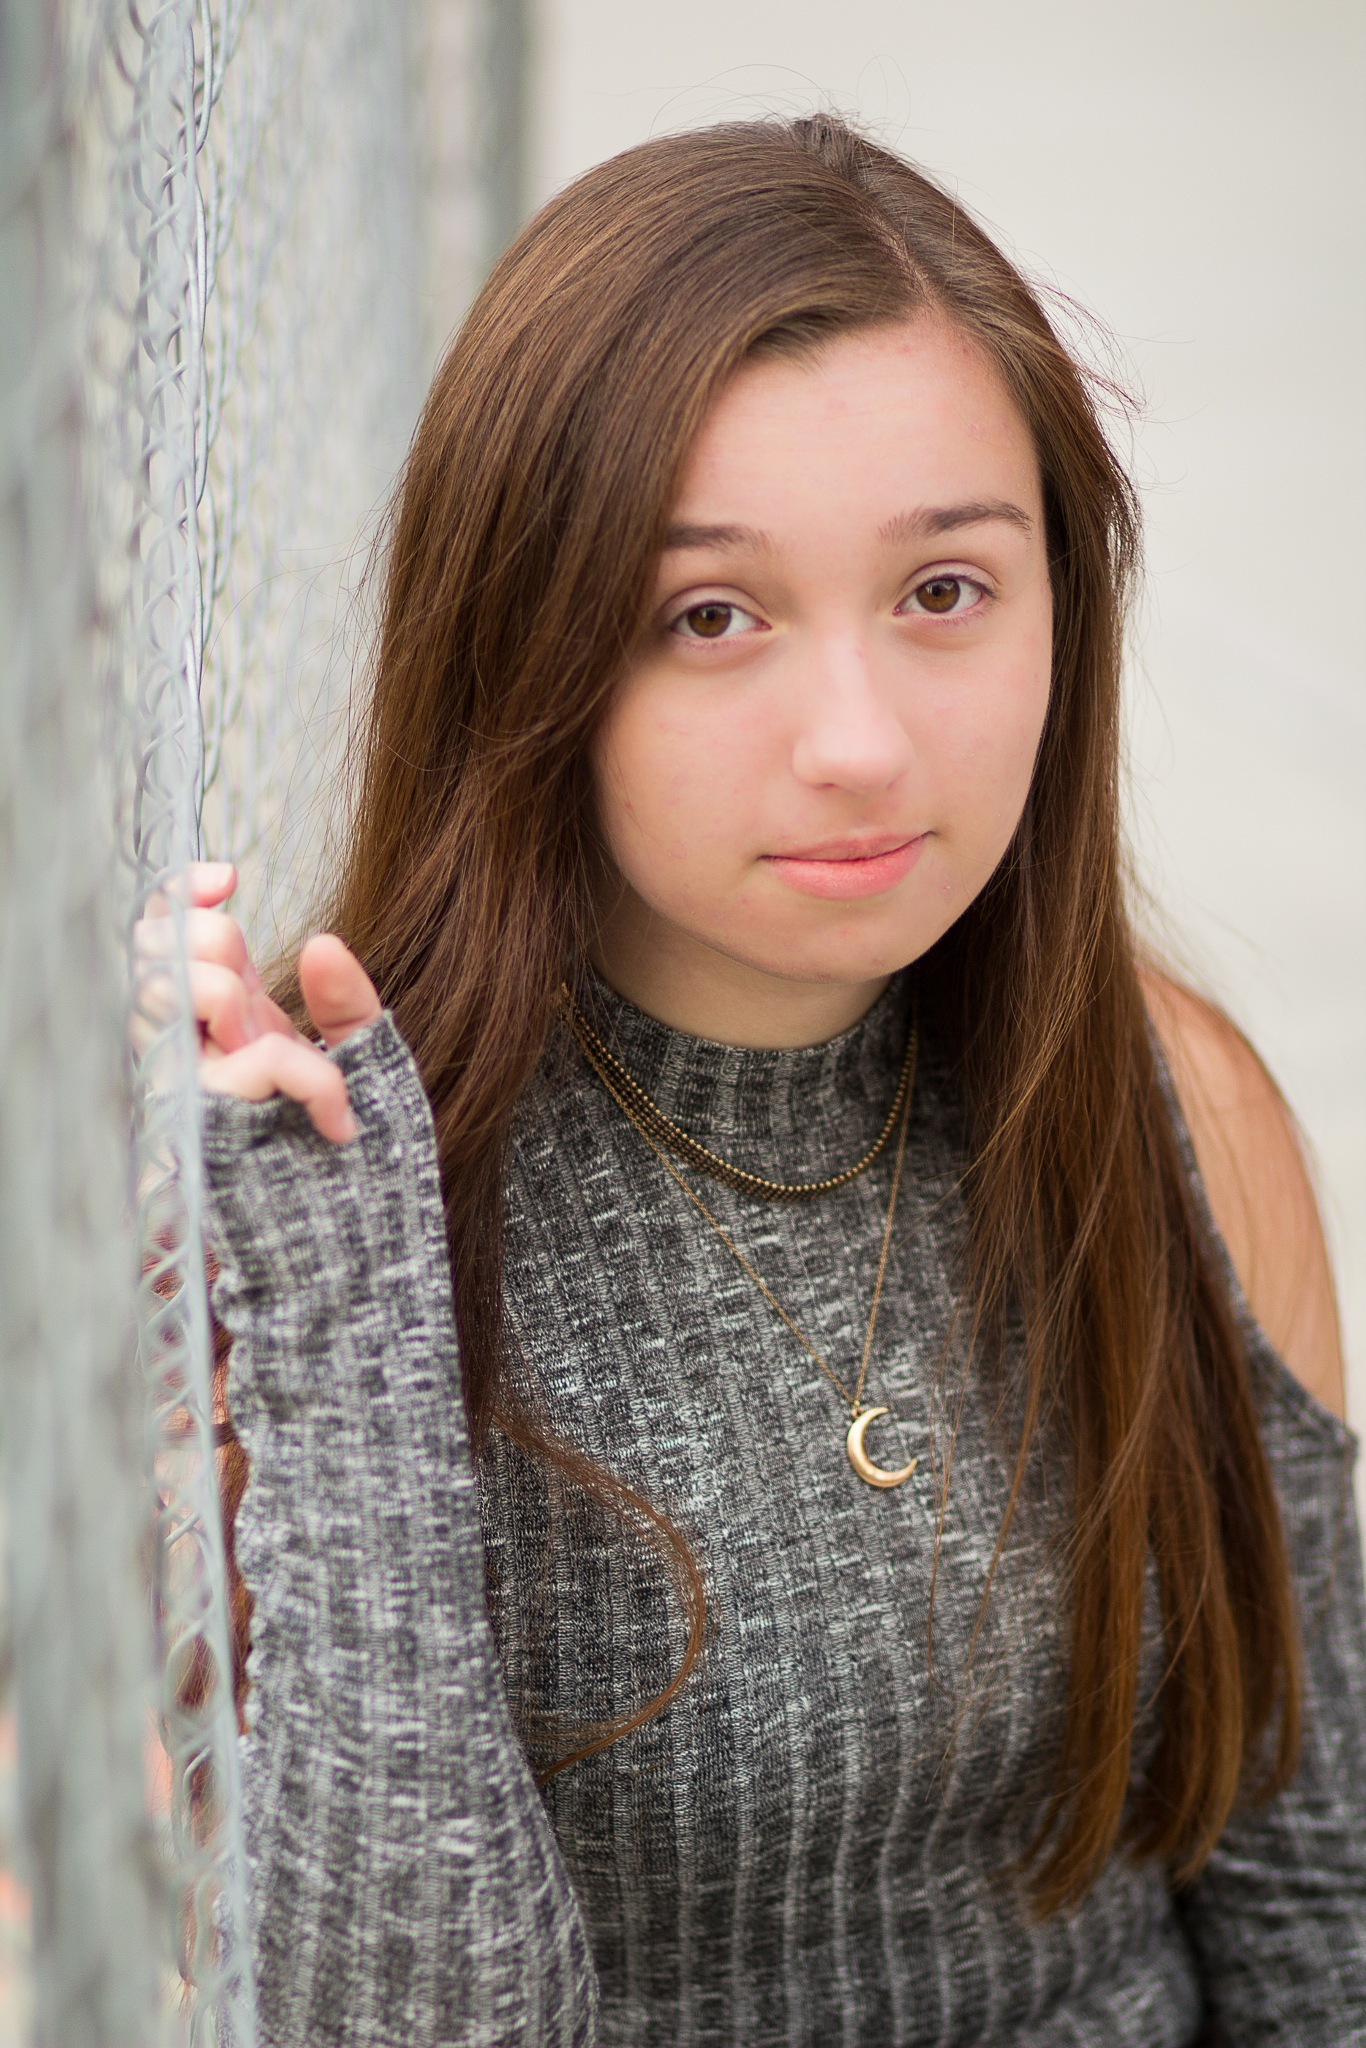 Anna Leaning on Chain link fence by Monique DeLay Gartner